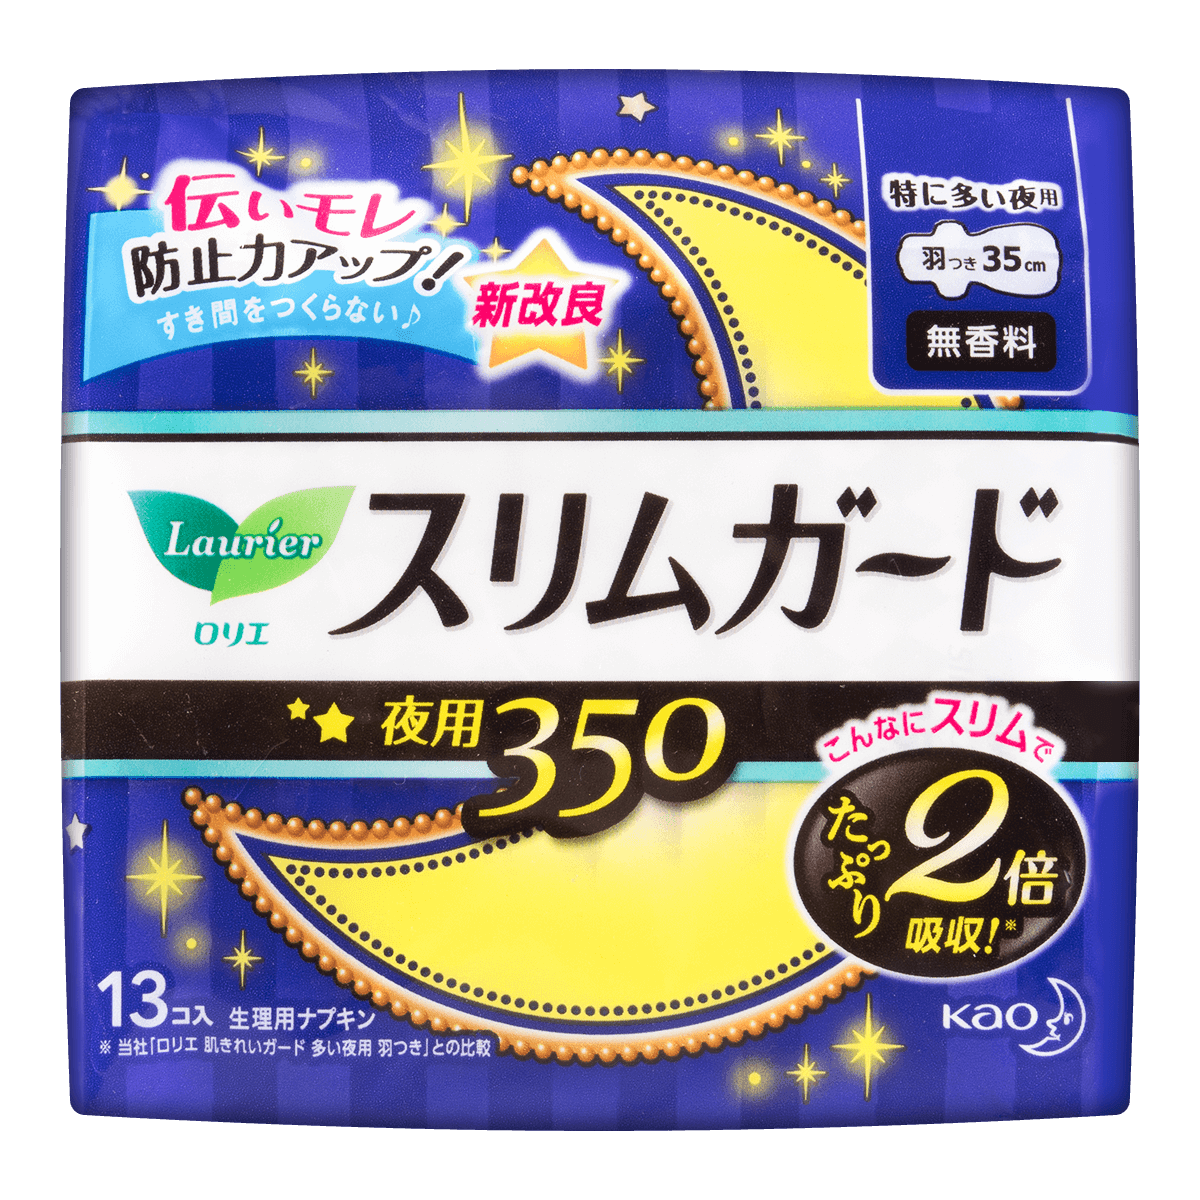 Bcl Tsururi Heel Scrubbing Ghassoul Soap 80g Laurier Healthy Skin Night 35cm 6s Kao Speed Slimguard Sanitary Napkin With Wings Use 13 Pads